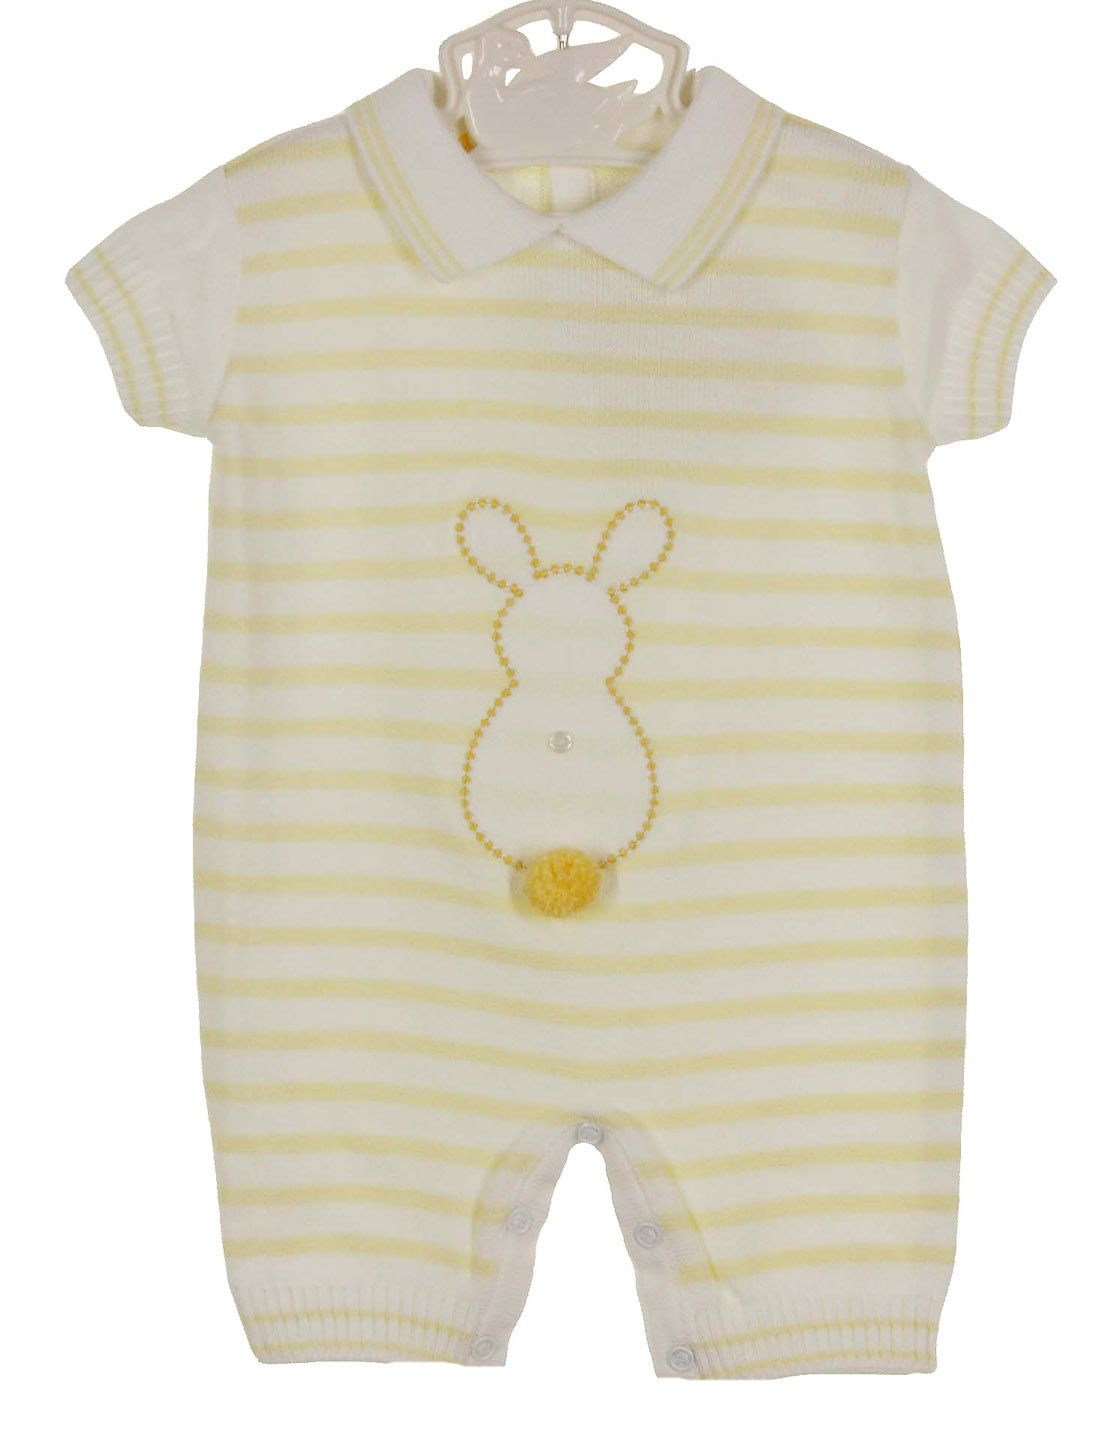 b91b36fb8788 NEW Dolce Goccia Yellow and White Striped Cotton Knit Romper with ...